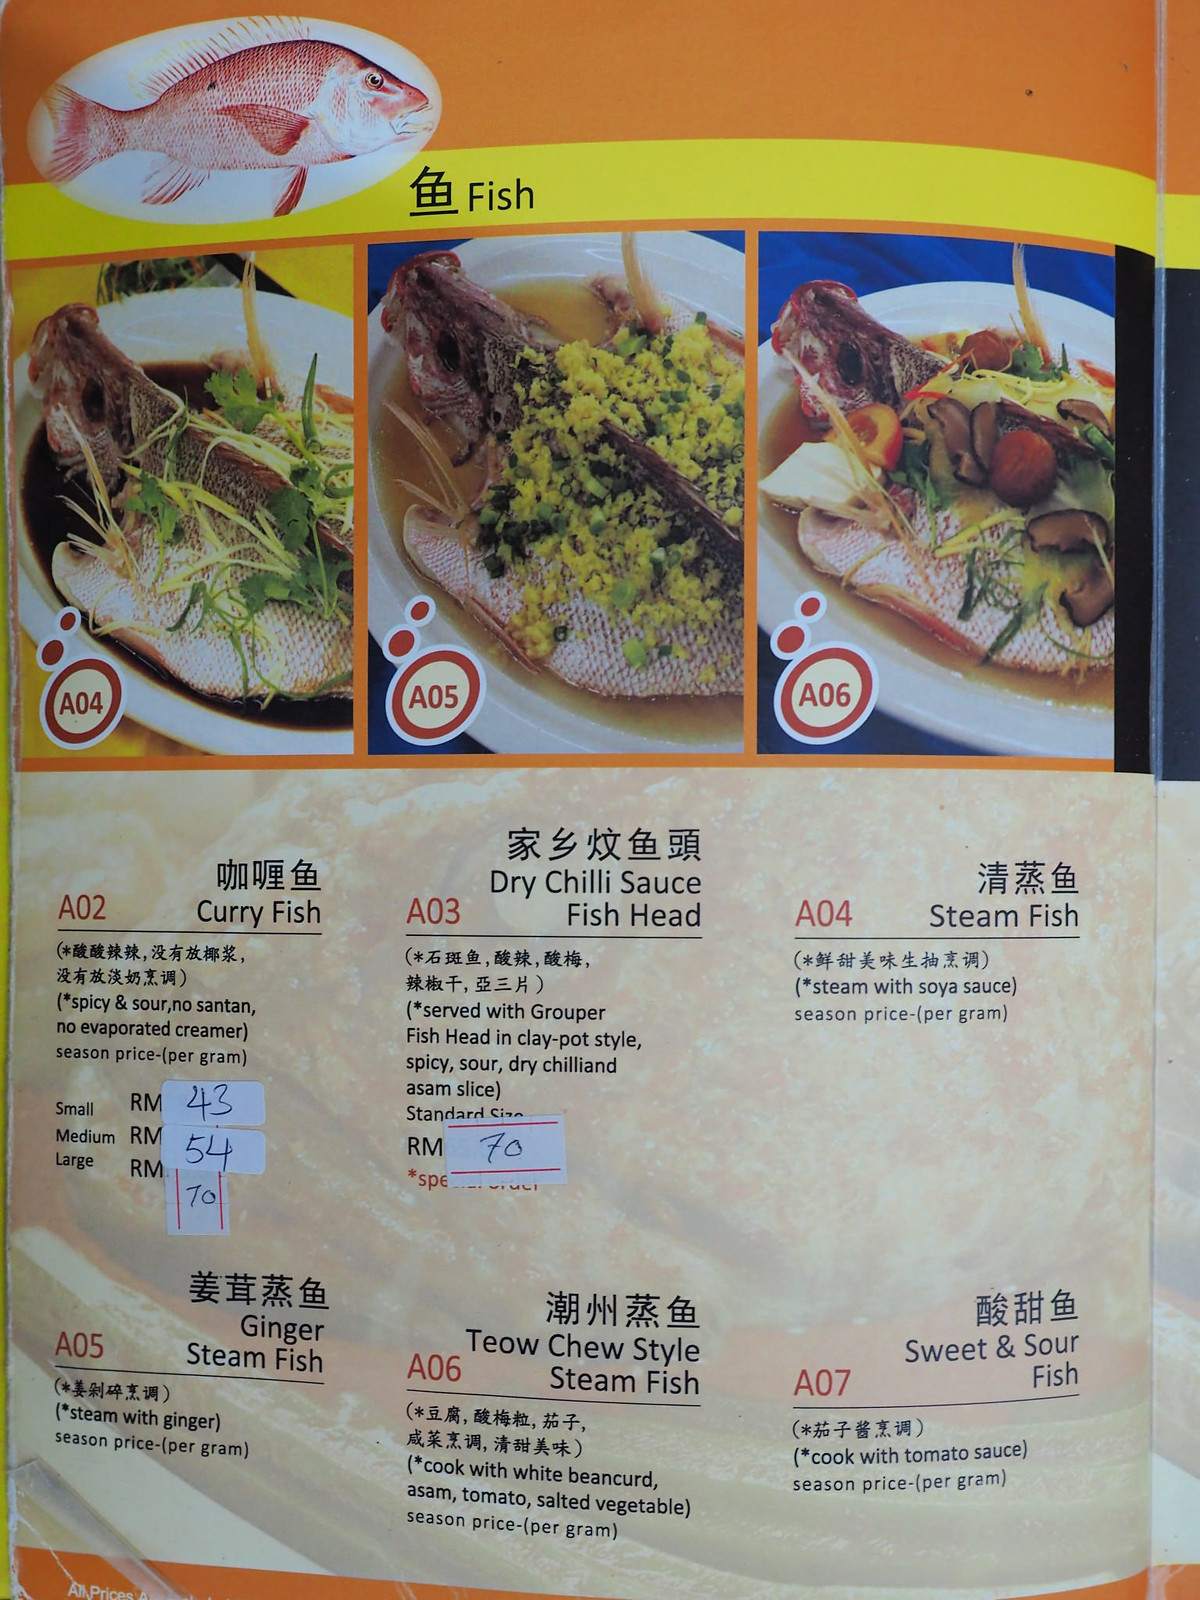 Fish menu from Pangkor Village Seafood, Taman Megah